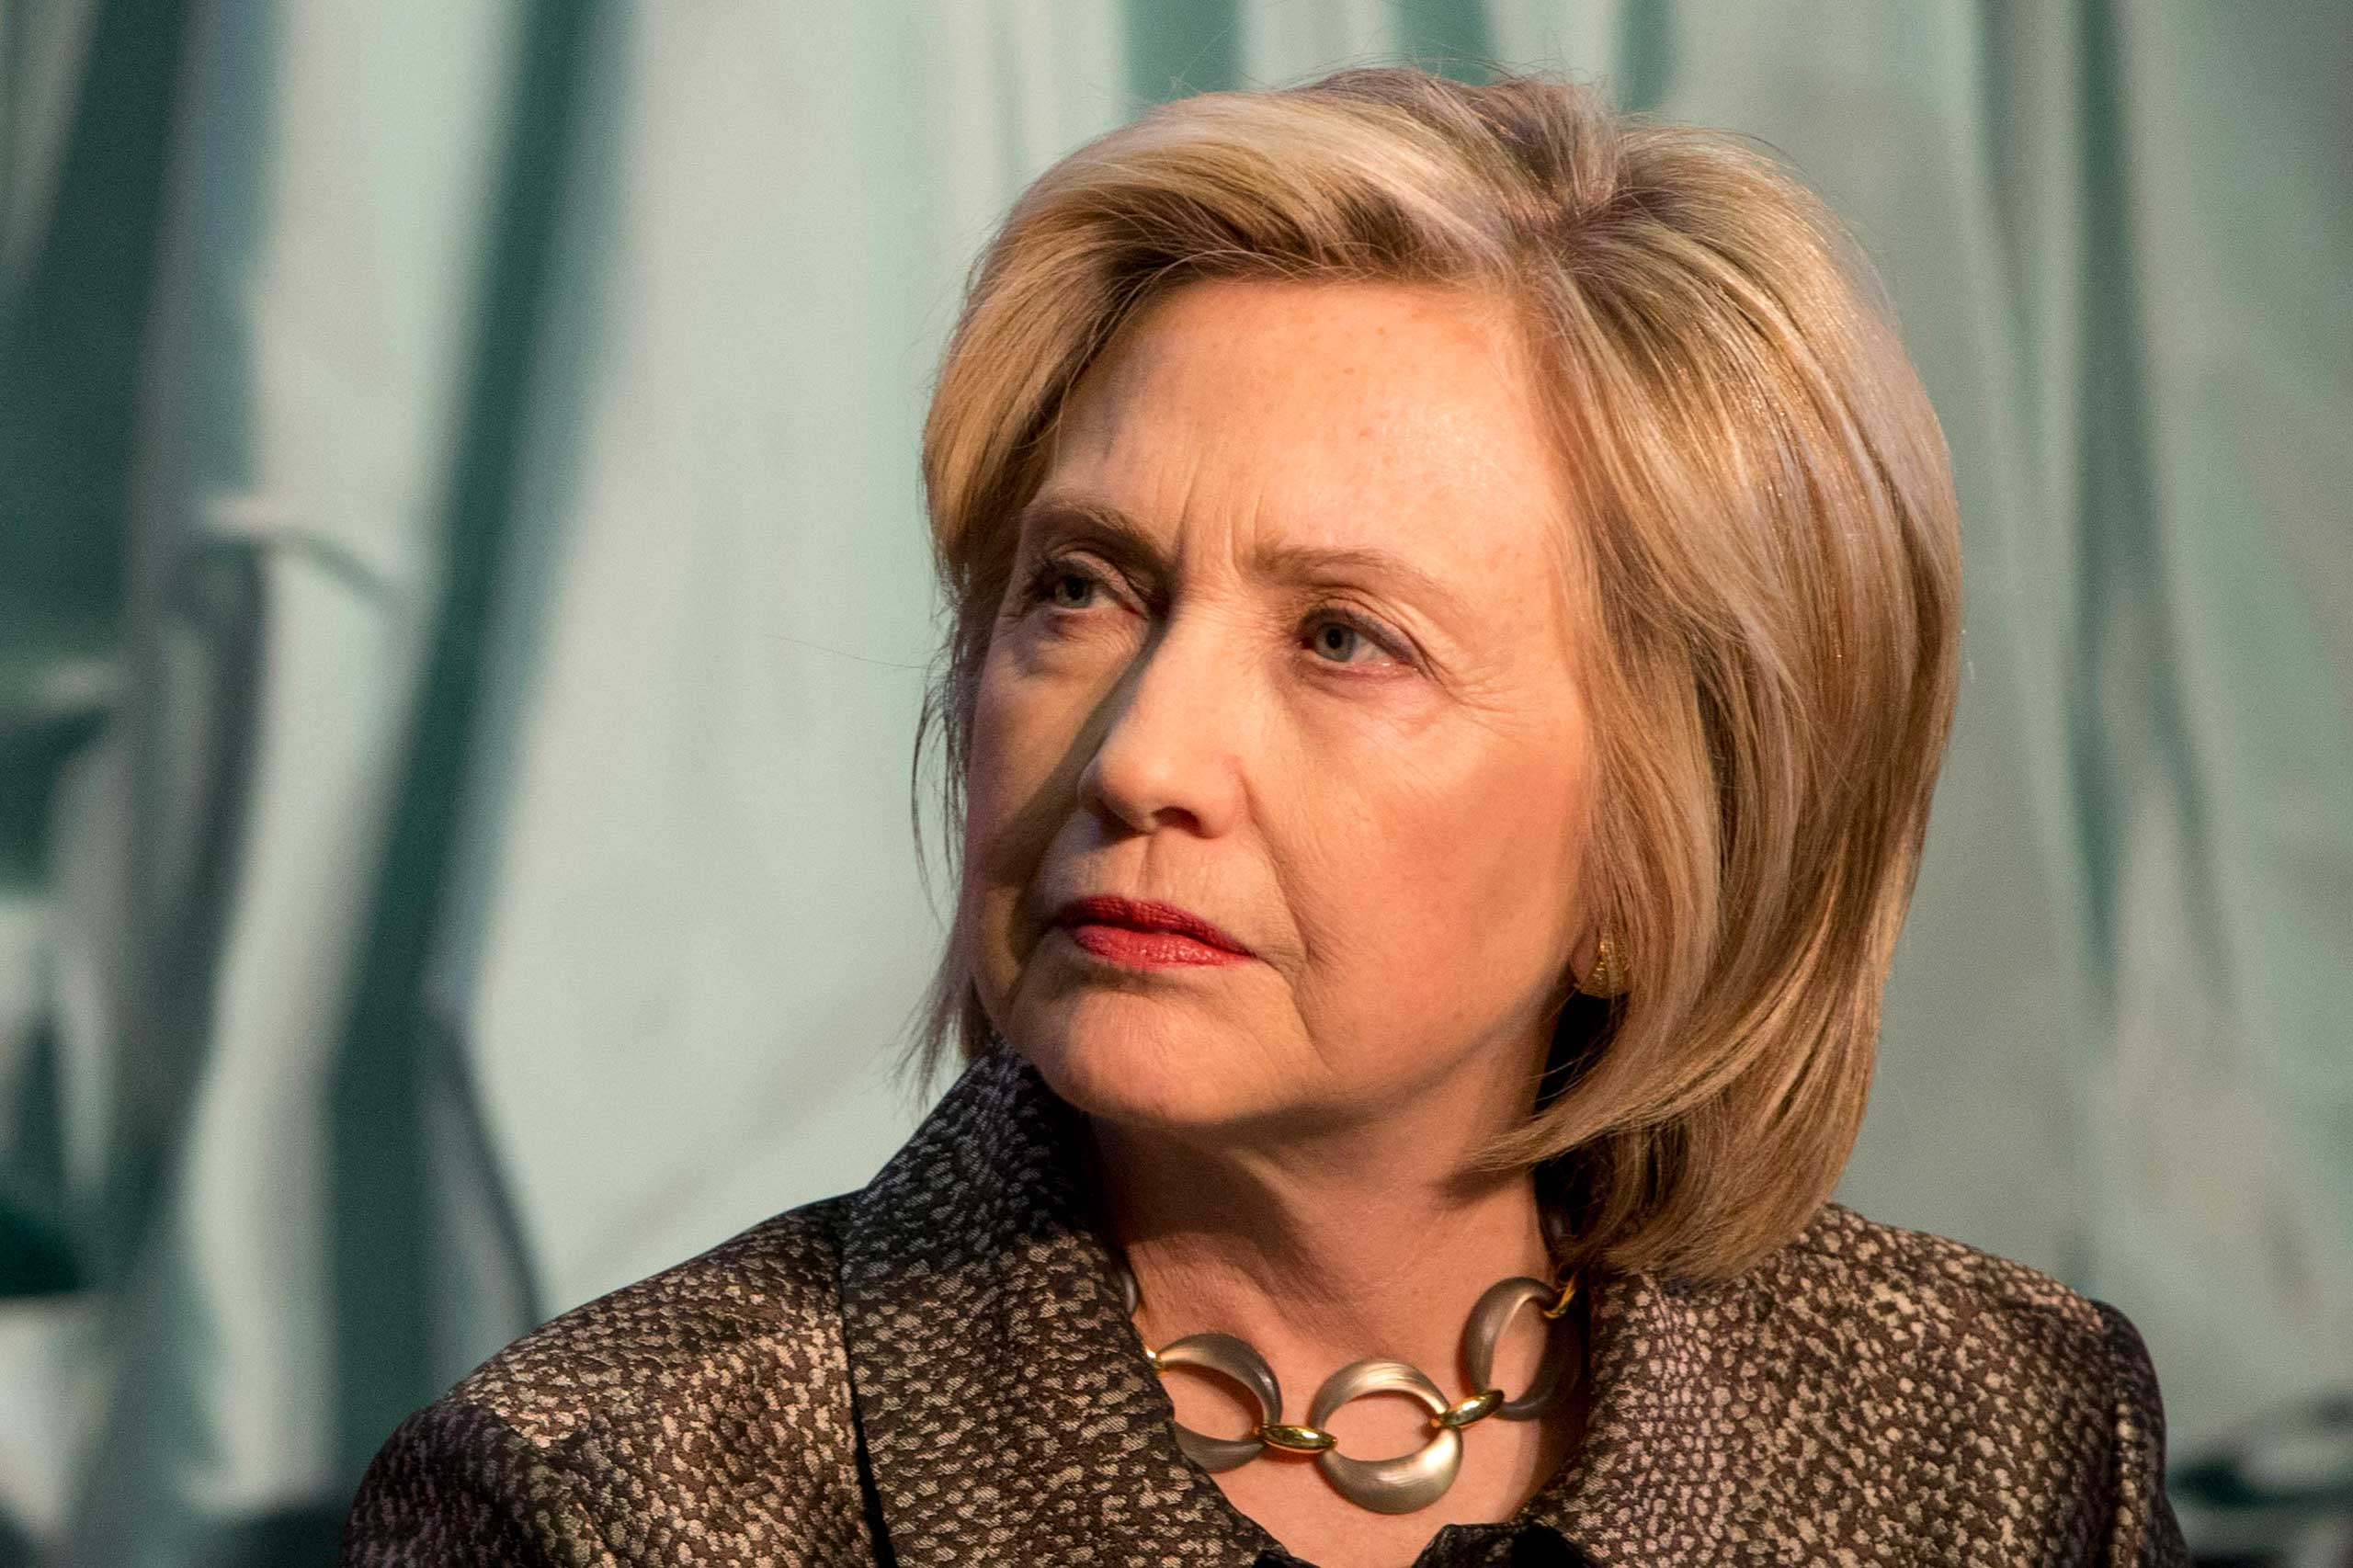 Democratic presidential candidate Hillary Rodham Clinton attends The Hillary Rodham Clinton Awards for Advancing Women in Peace and Security, in the Riggs Library at Georgetown University in Washington on Apr. 22, 2015.